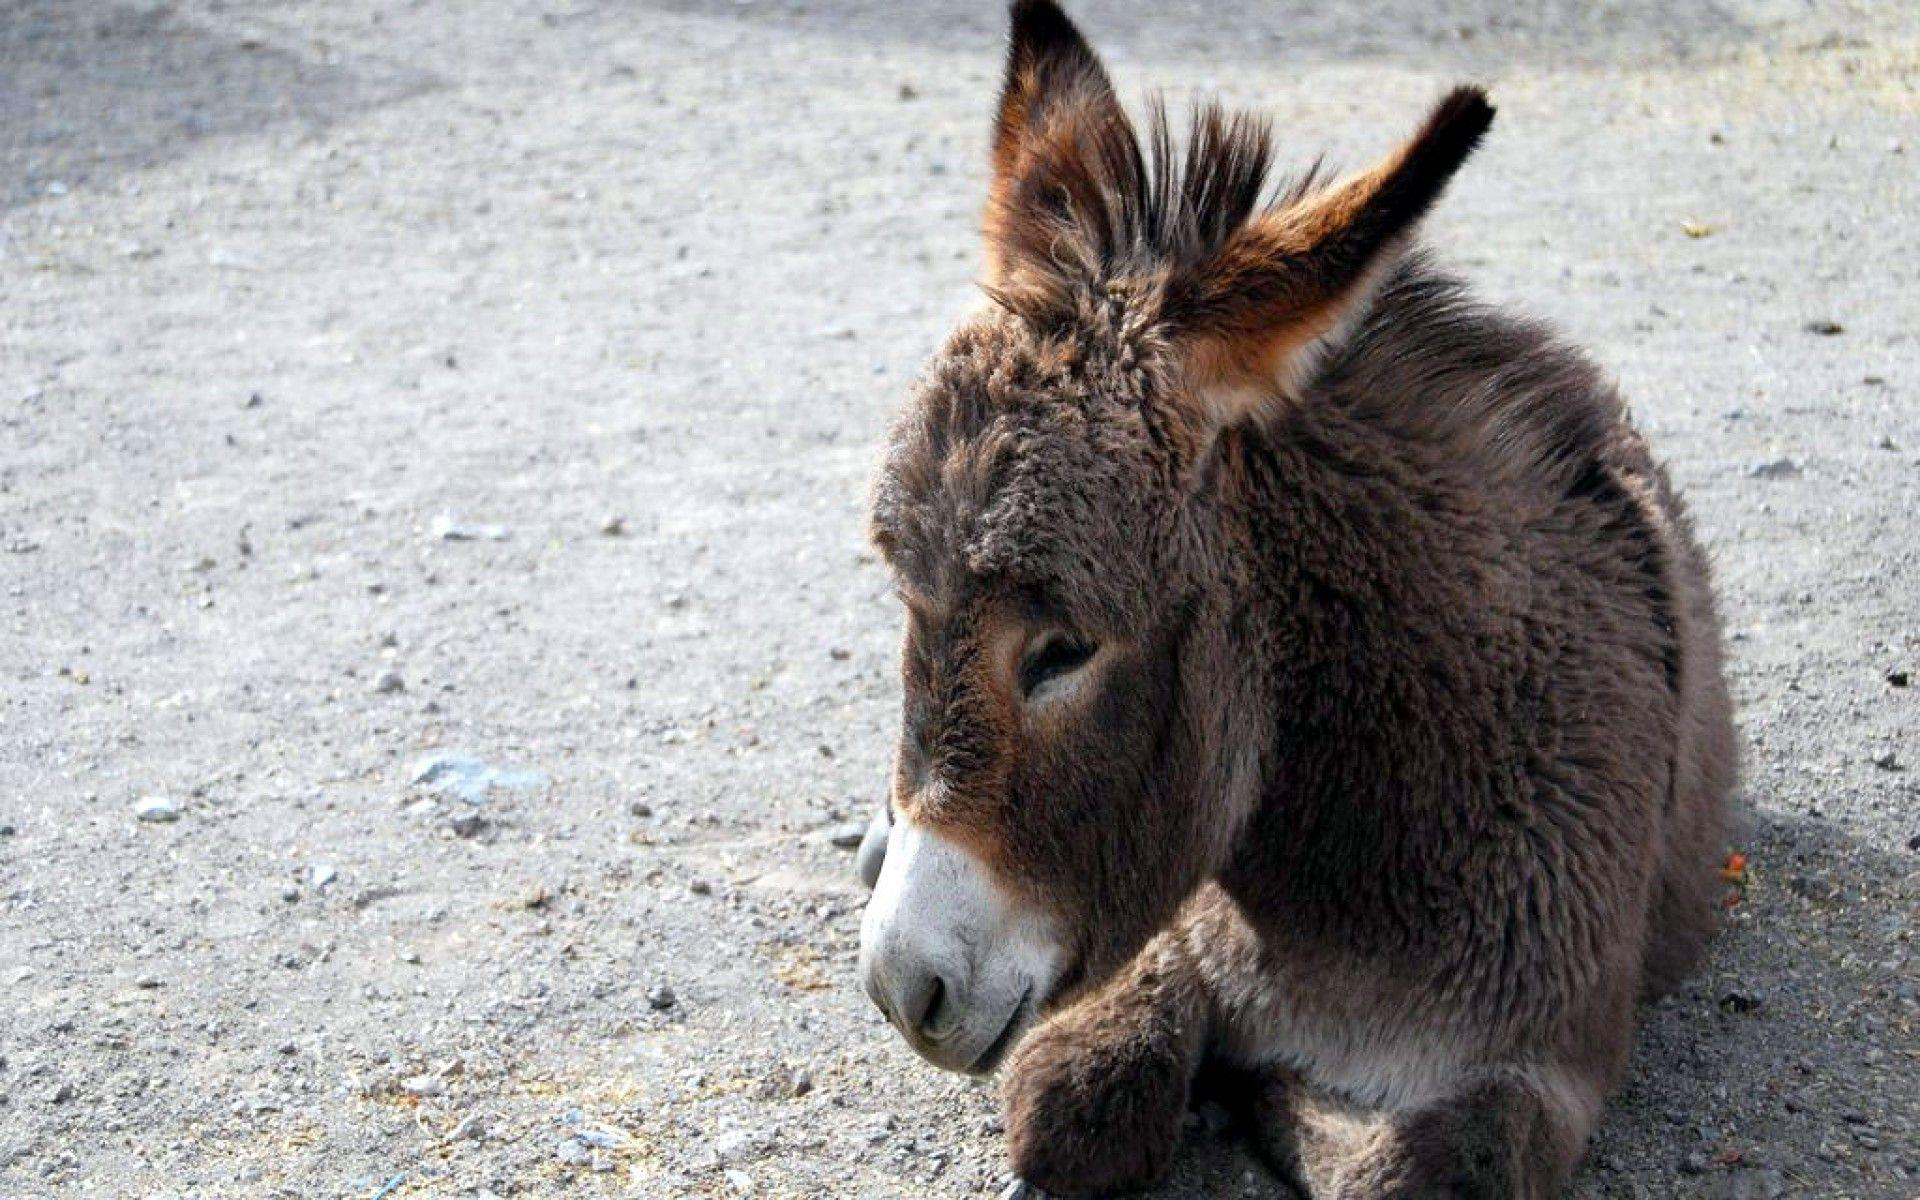 Baby Donkey Cartoon Wallpaper